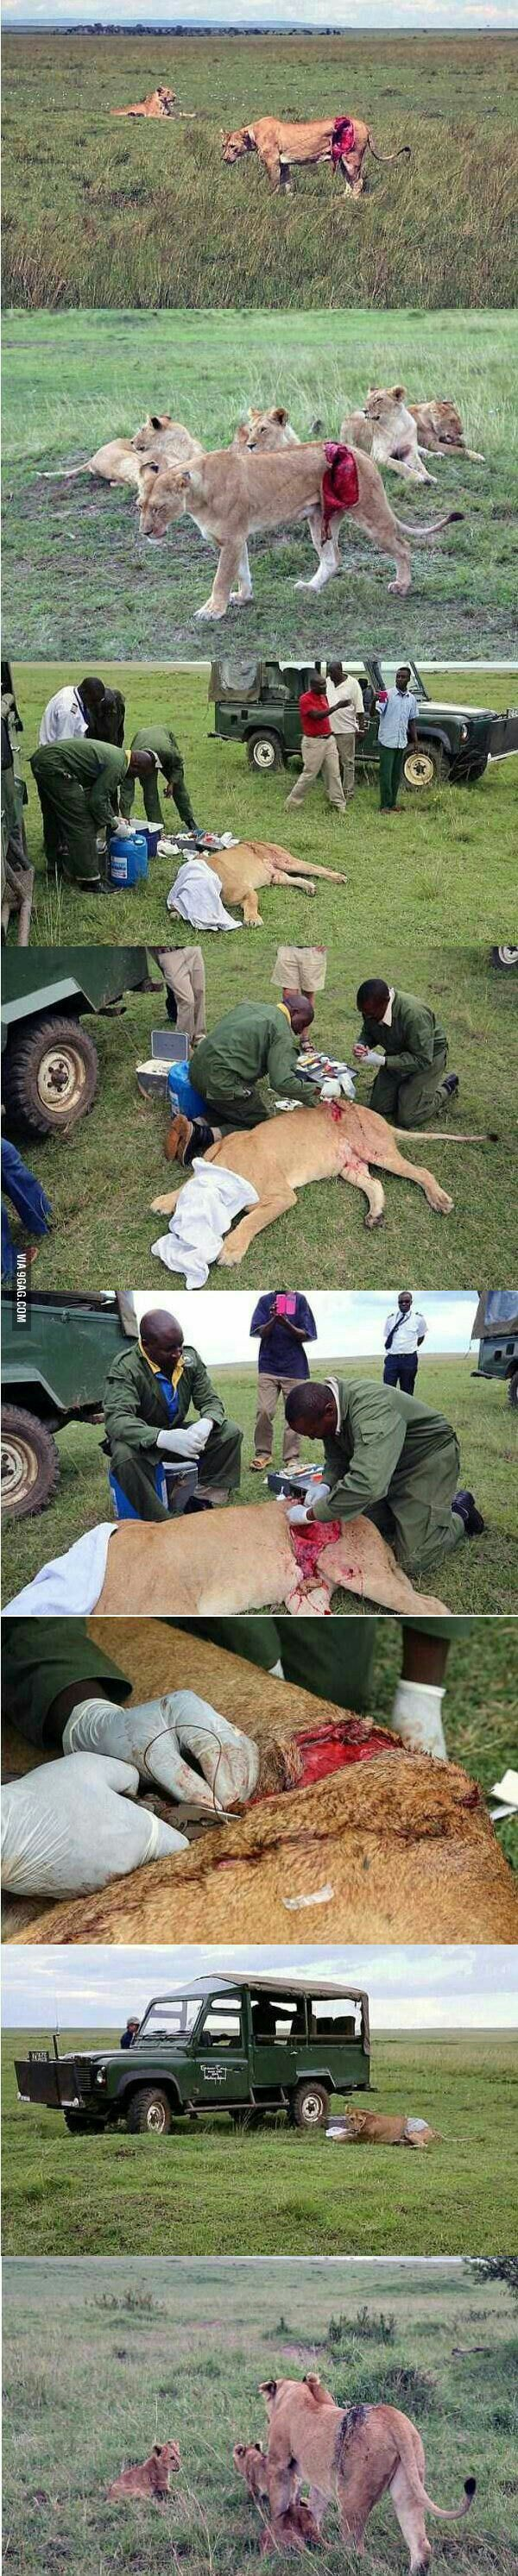 Faith in humanity restored - 9GAG